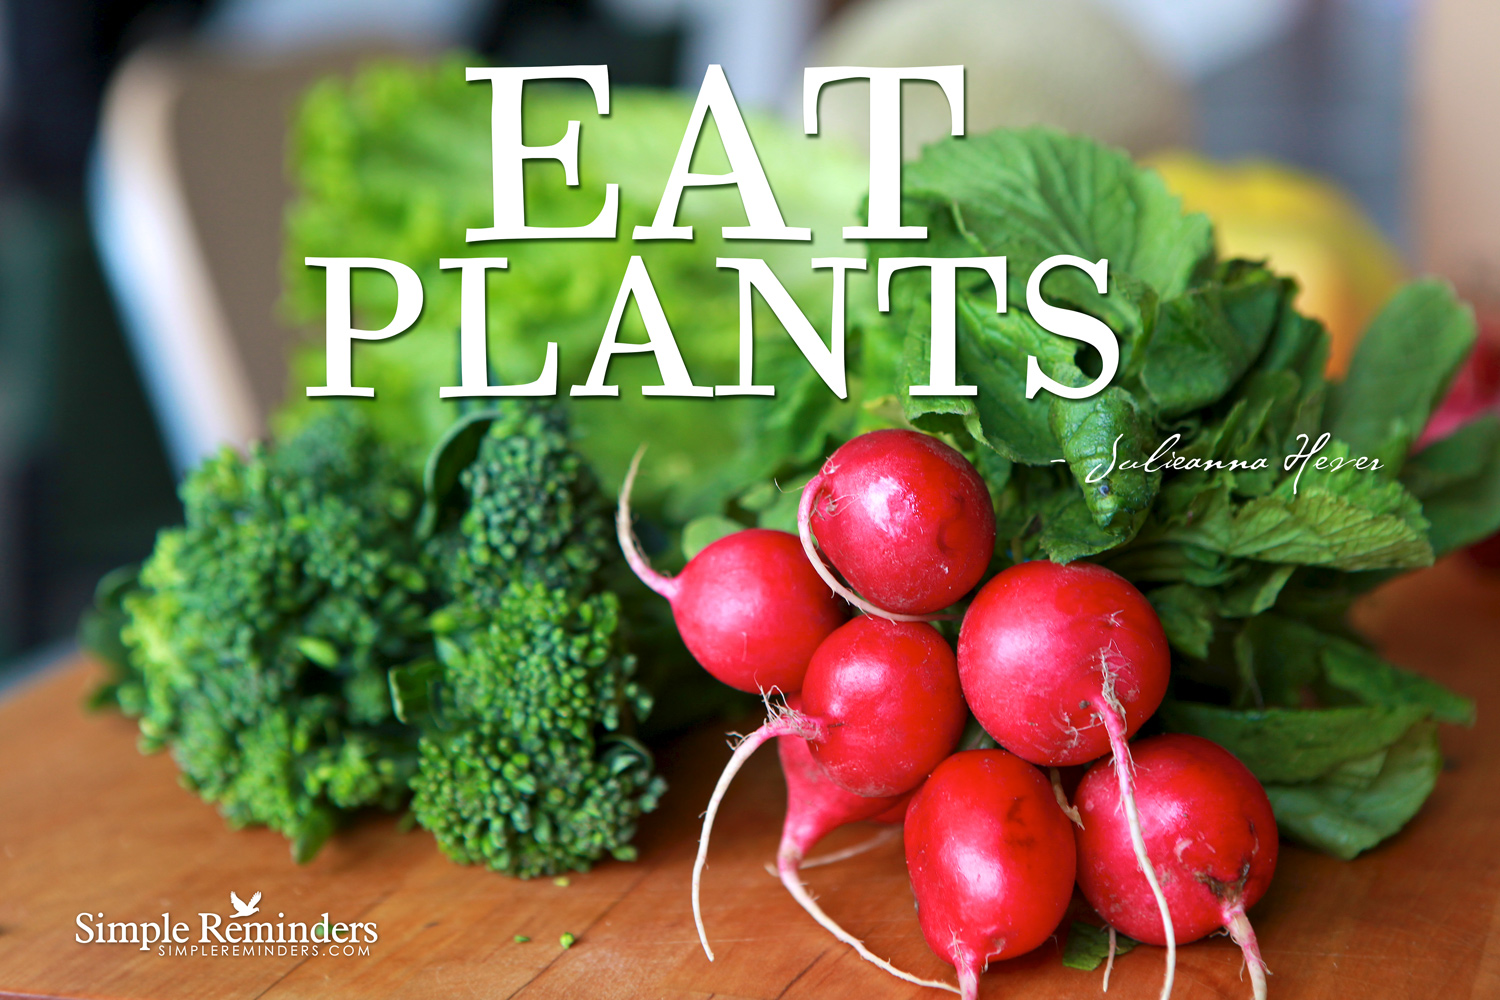 simplereminders.com-eat-plants-hever-withtext-displayres